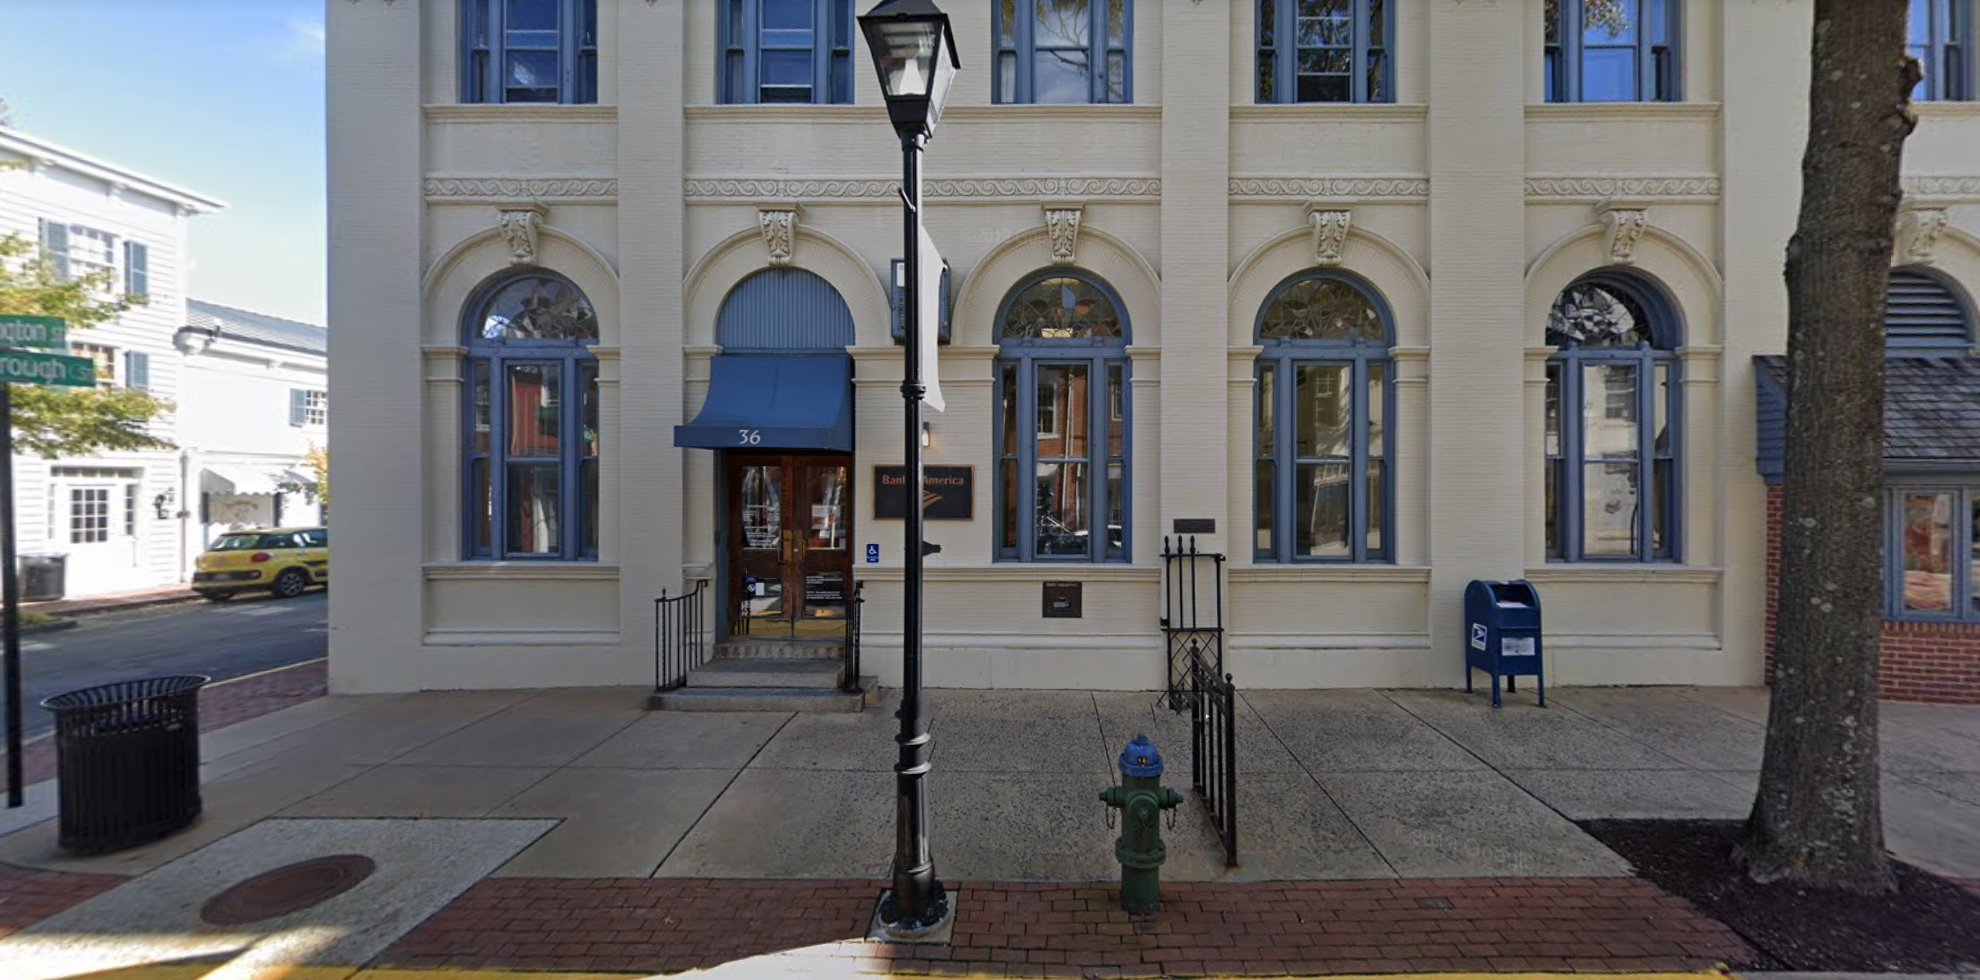 Bank of America financial center with walk-up ATM | 36 N Washington St, Easton, MD 21601